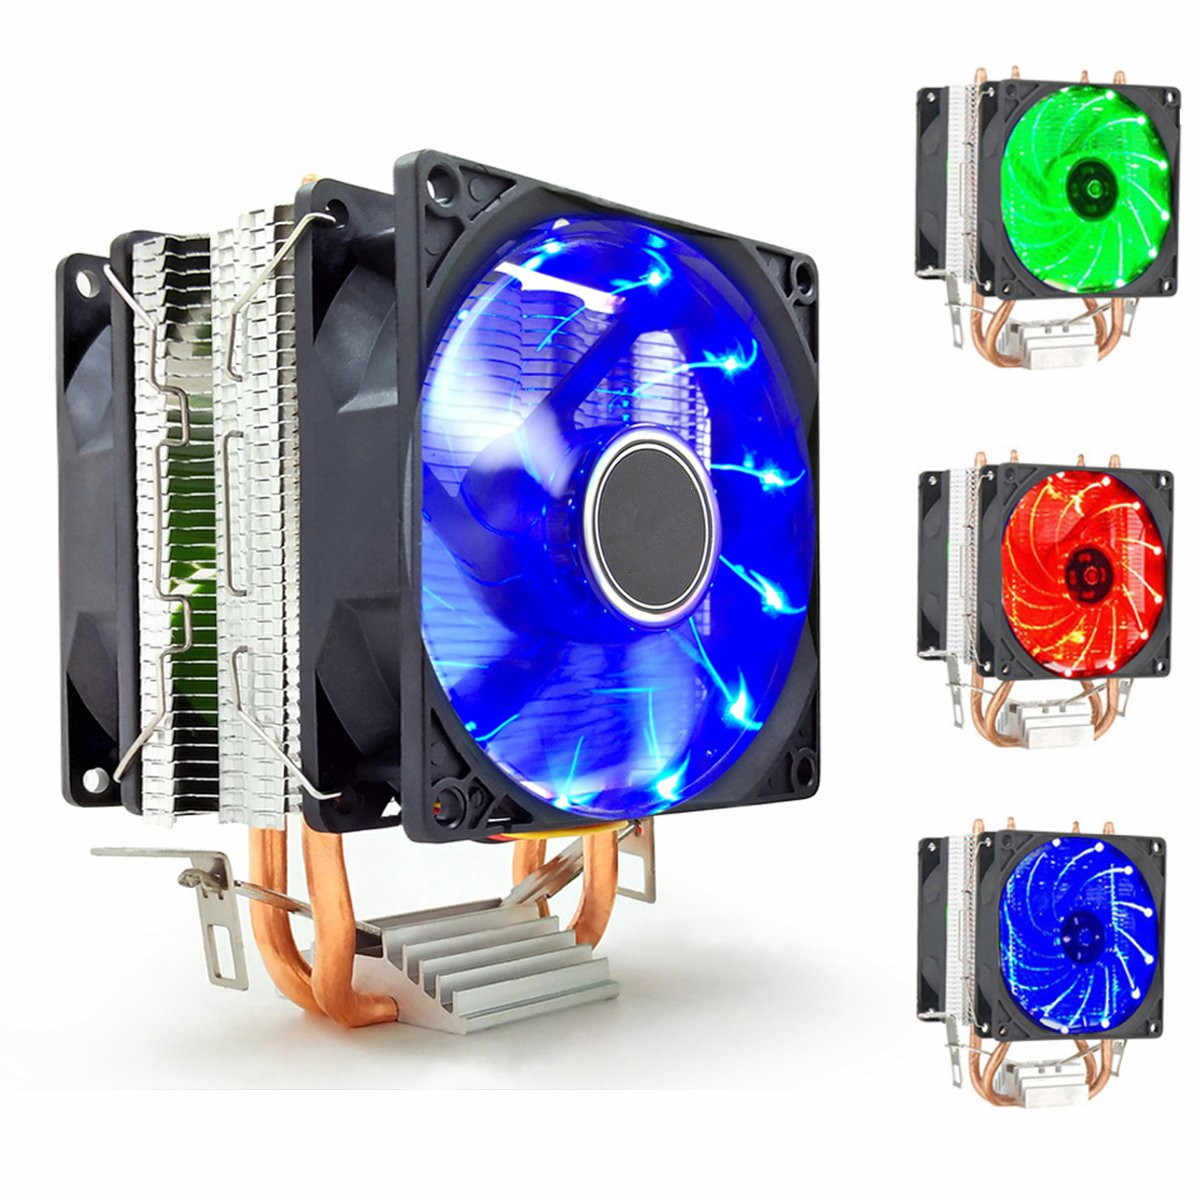 LED Dual Fan 2 Heat Pipe Quiet CPU Cooler Heatsink Radiator For LGA 1155 775 1156 AMD 12V Dual CPU Cooler Powerful Fan For AMD